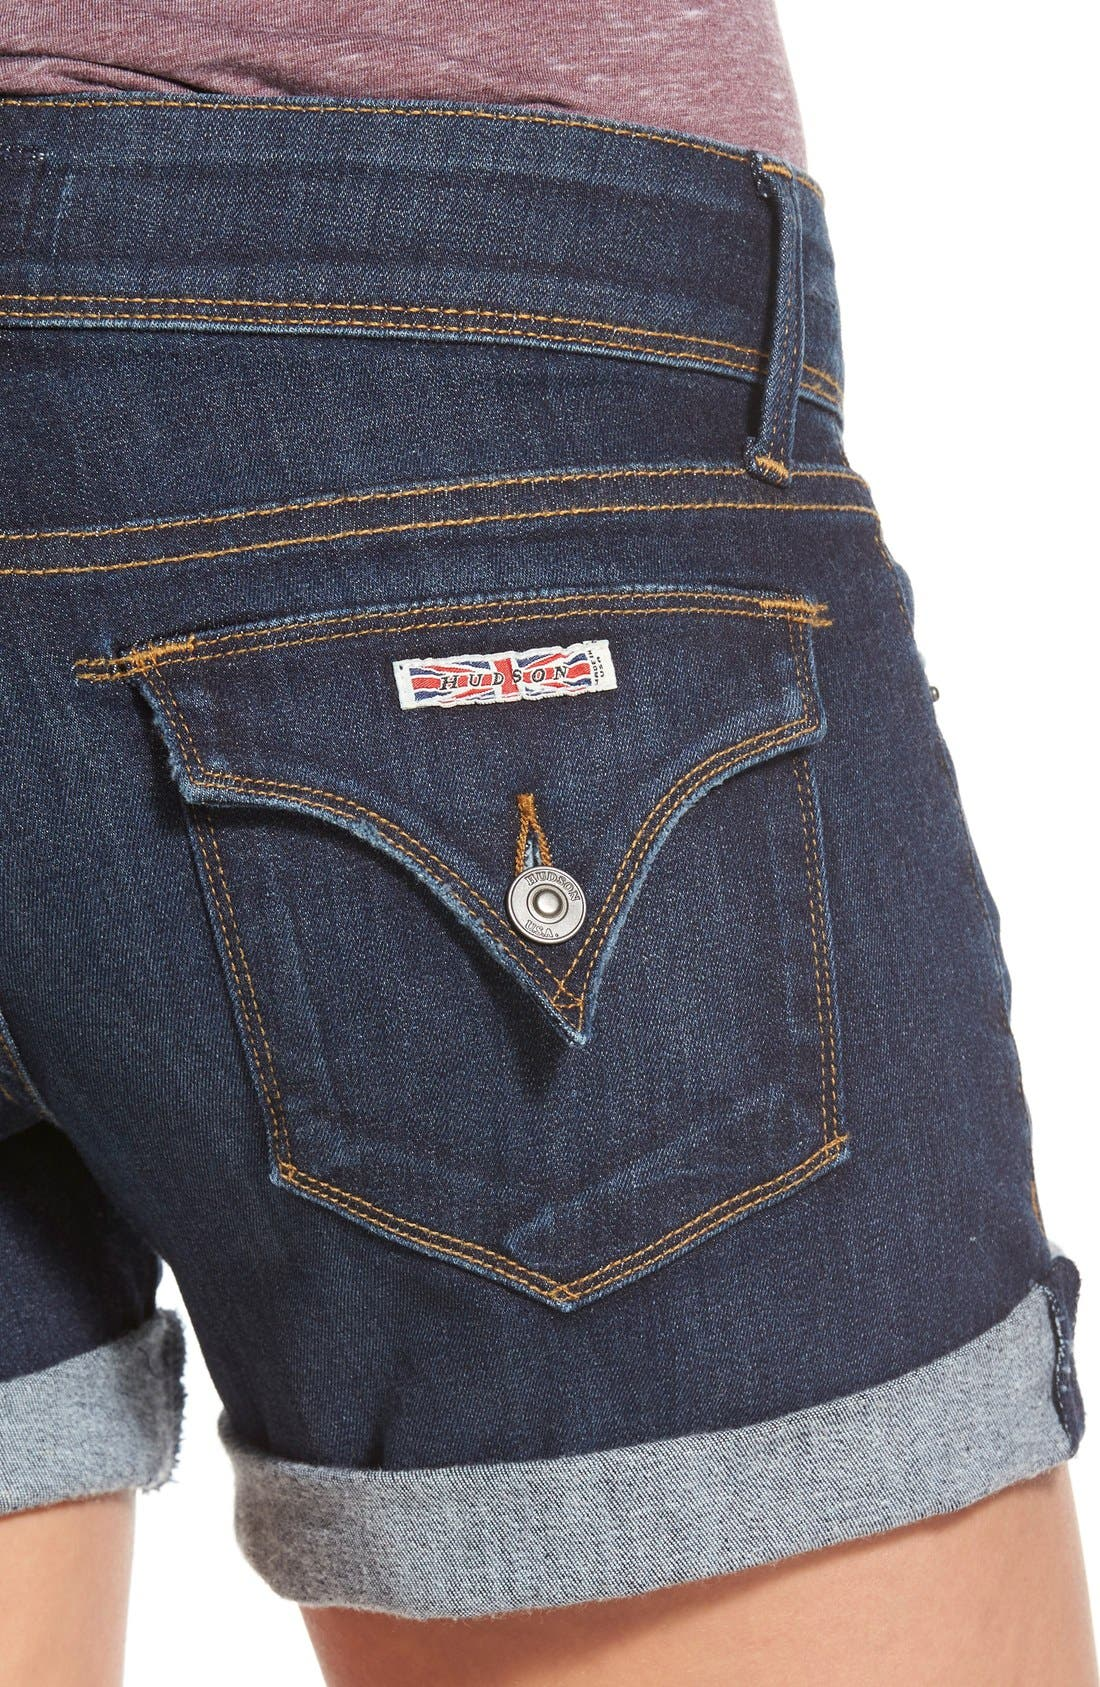 'Croxley' Cuffed Denim Shorts,                             Alternate thumbnail 22, color,